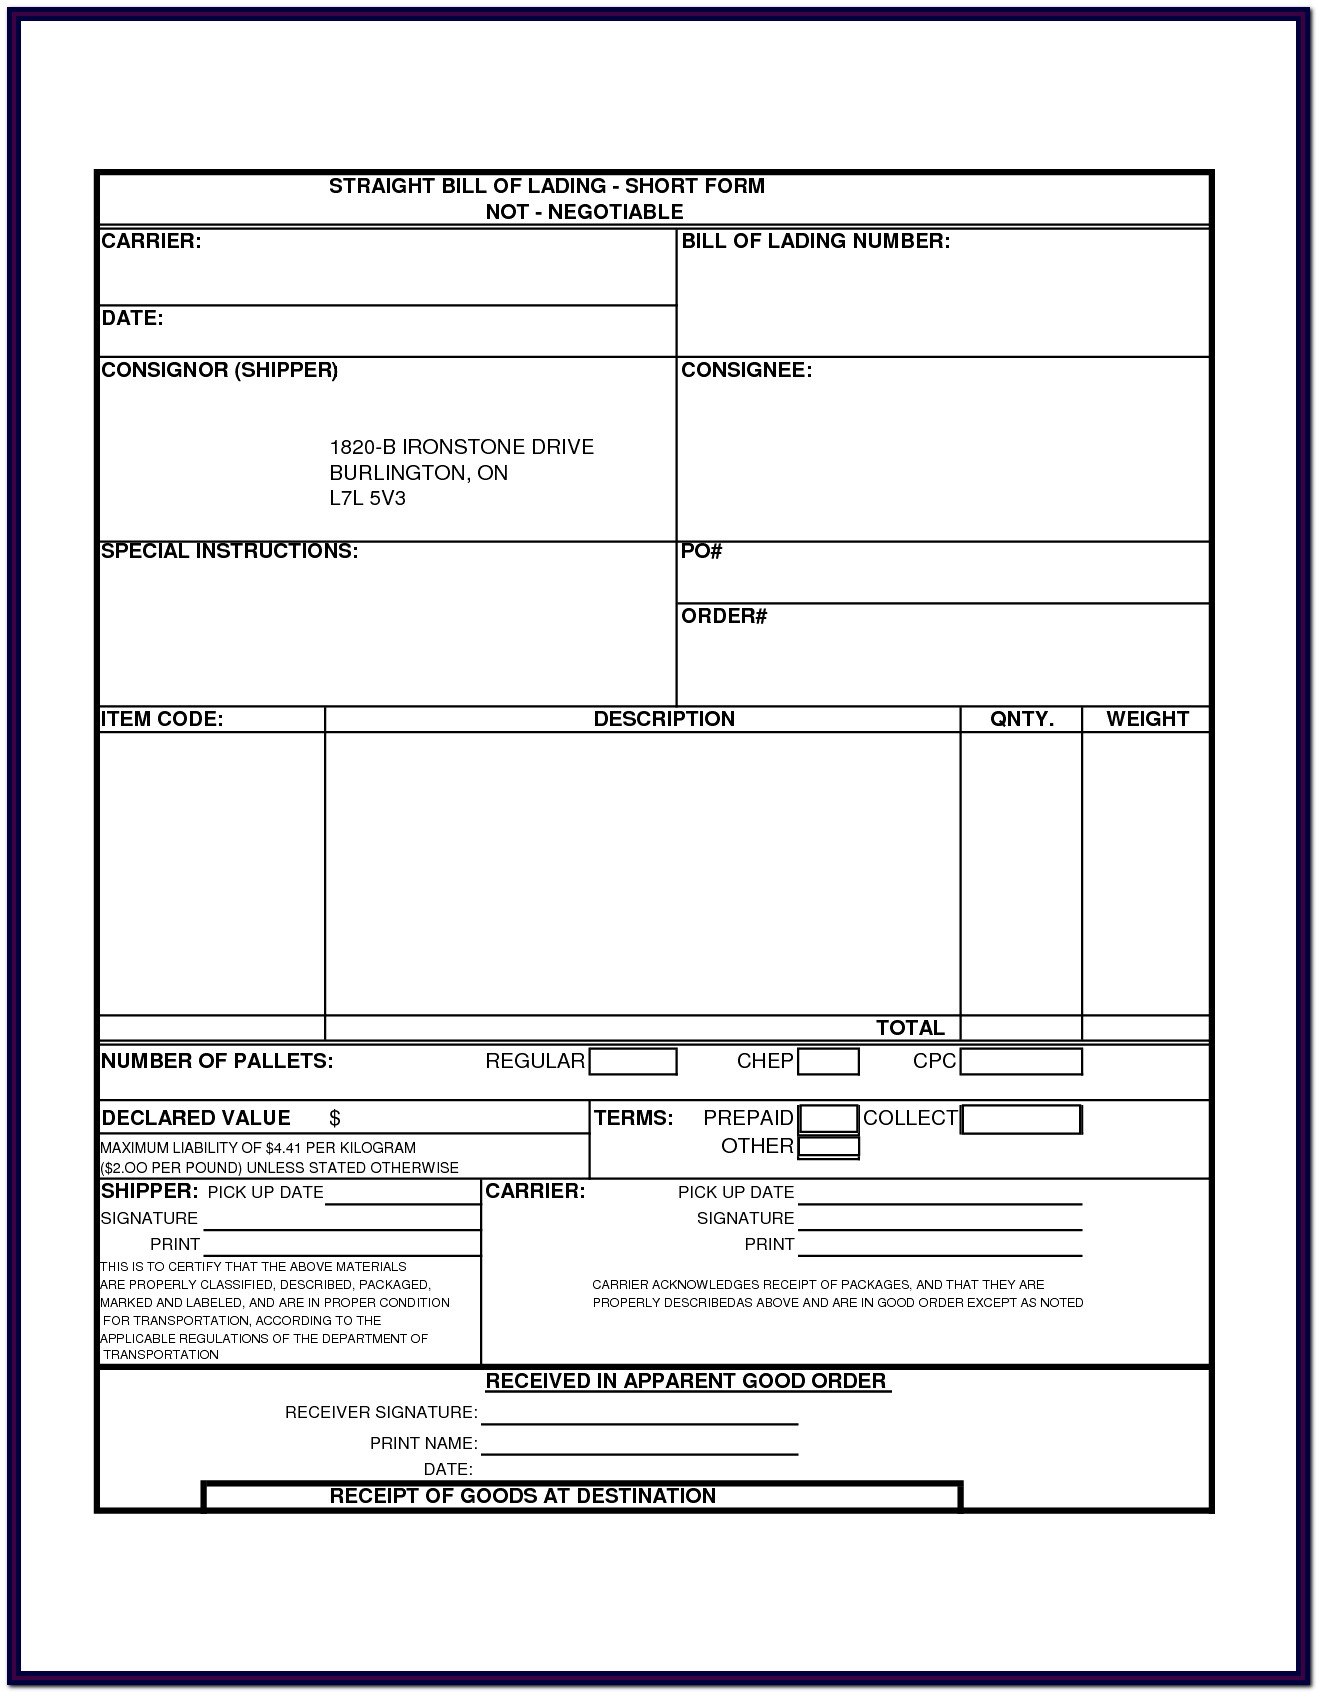 Bill Of Lading Form Word Document